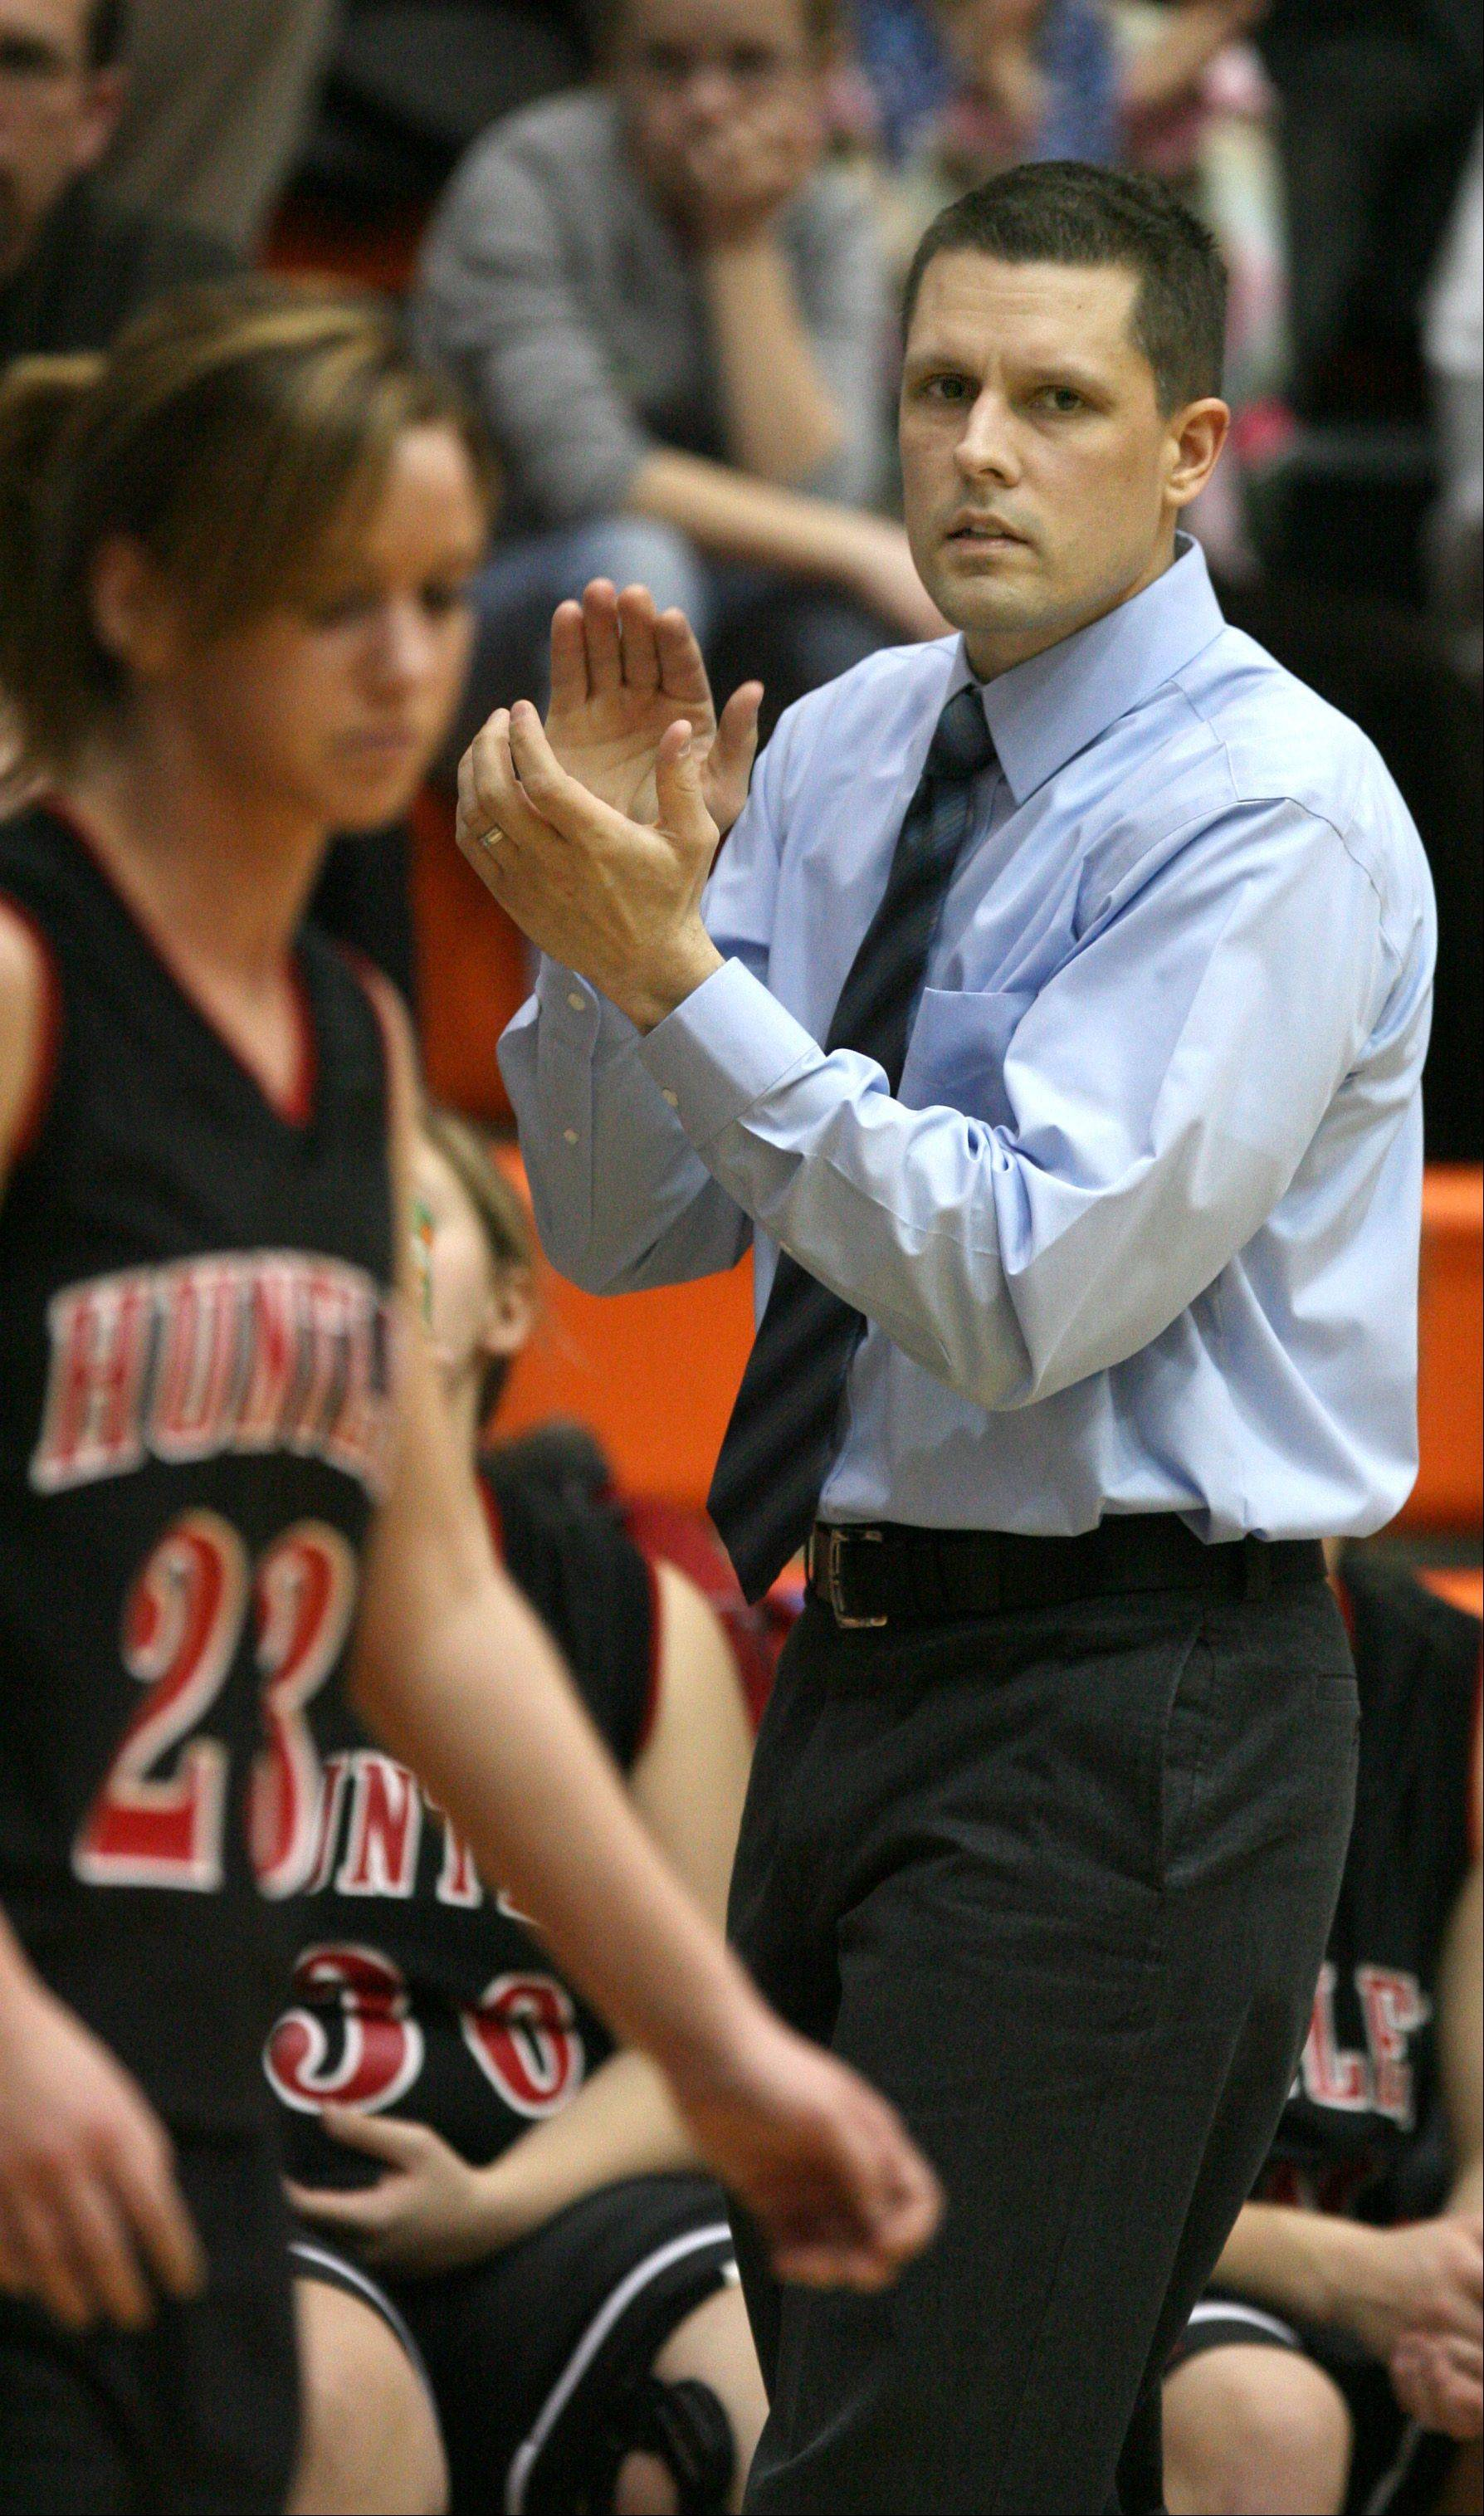 DANIEL WHITE/dwhite@dailyherald.com Huntley coach Steve Raethz encourages his players against Hoffman Estates during the 2007 season.